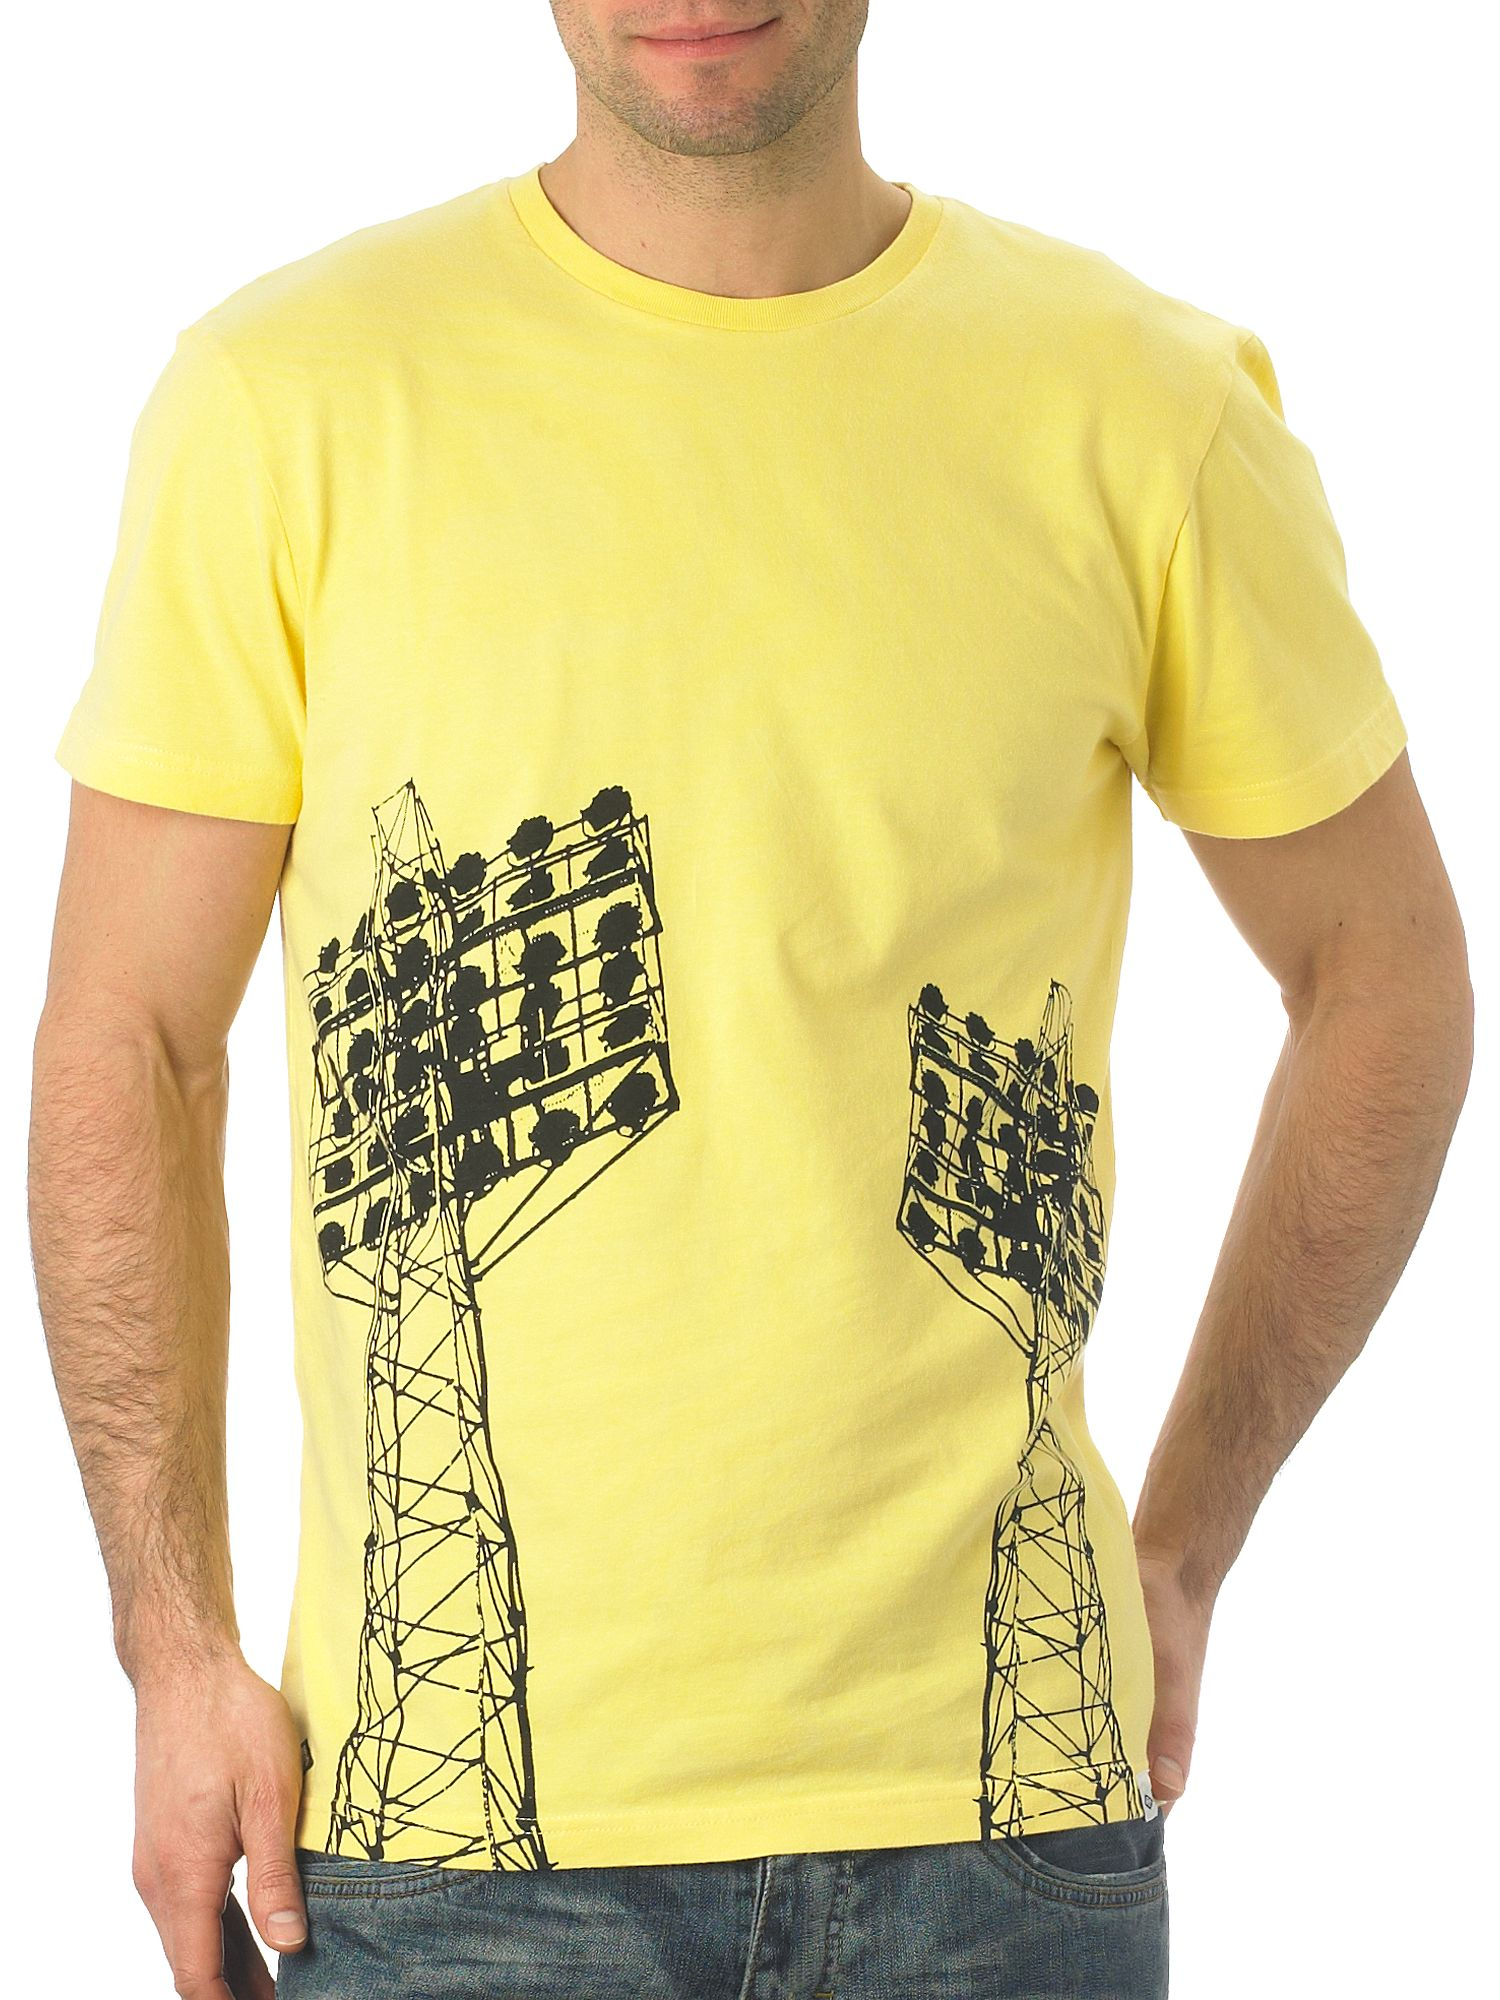 Umbro Floodlight Tee Yellow product image